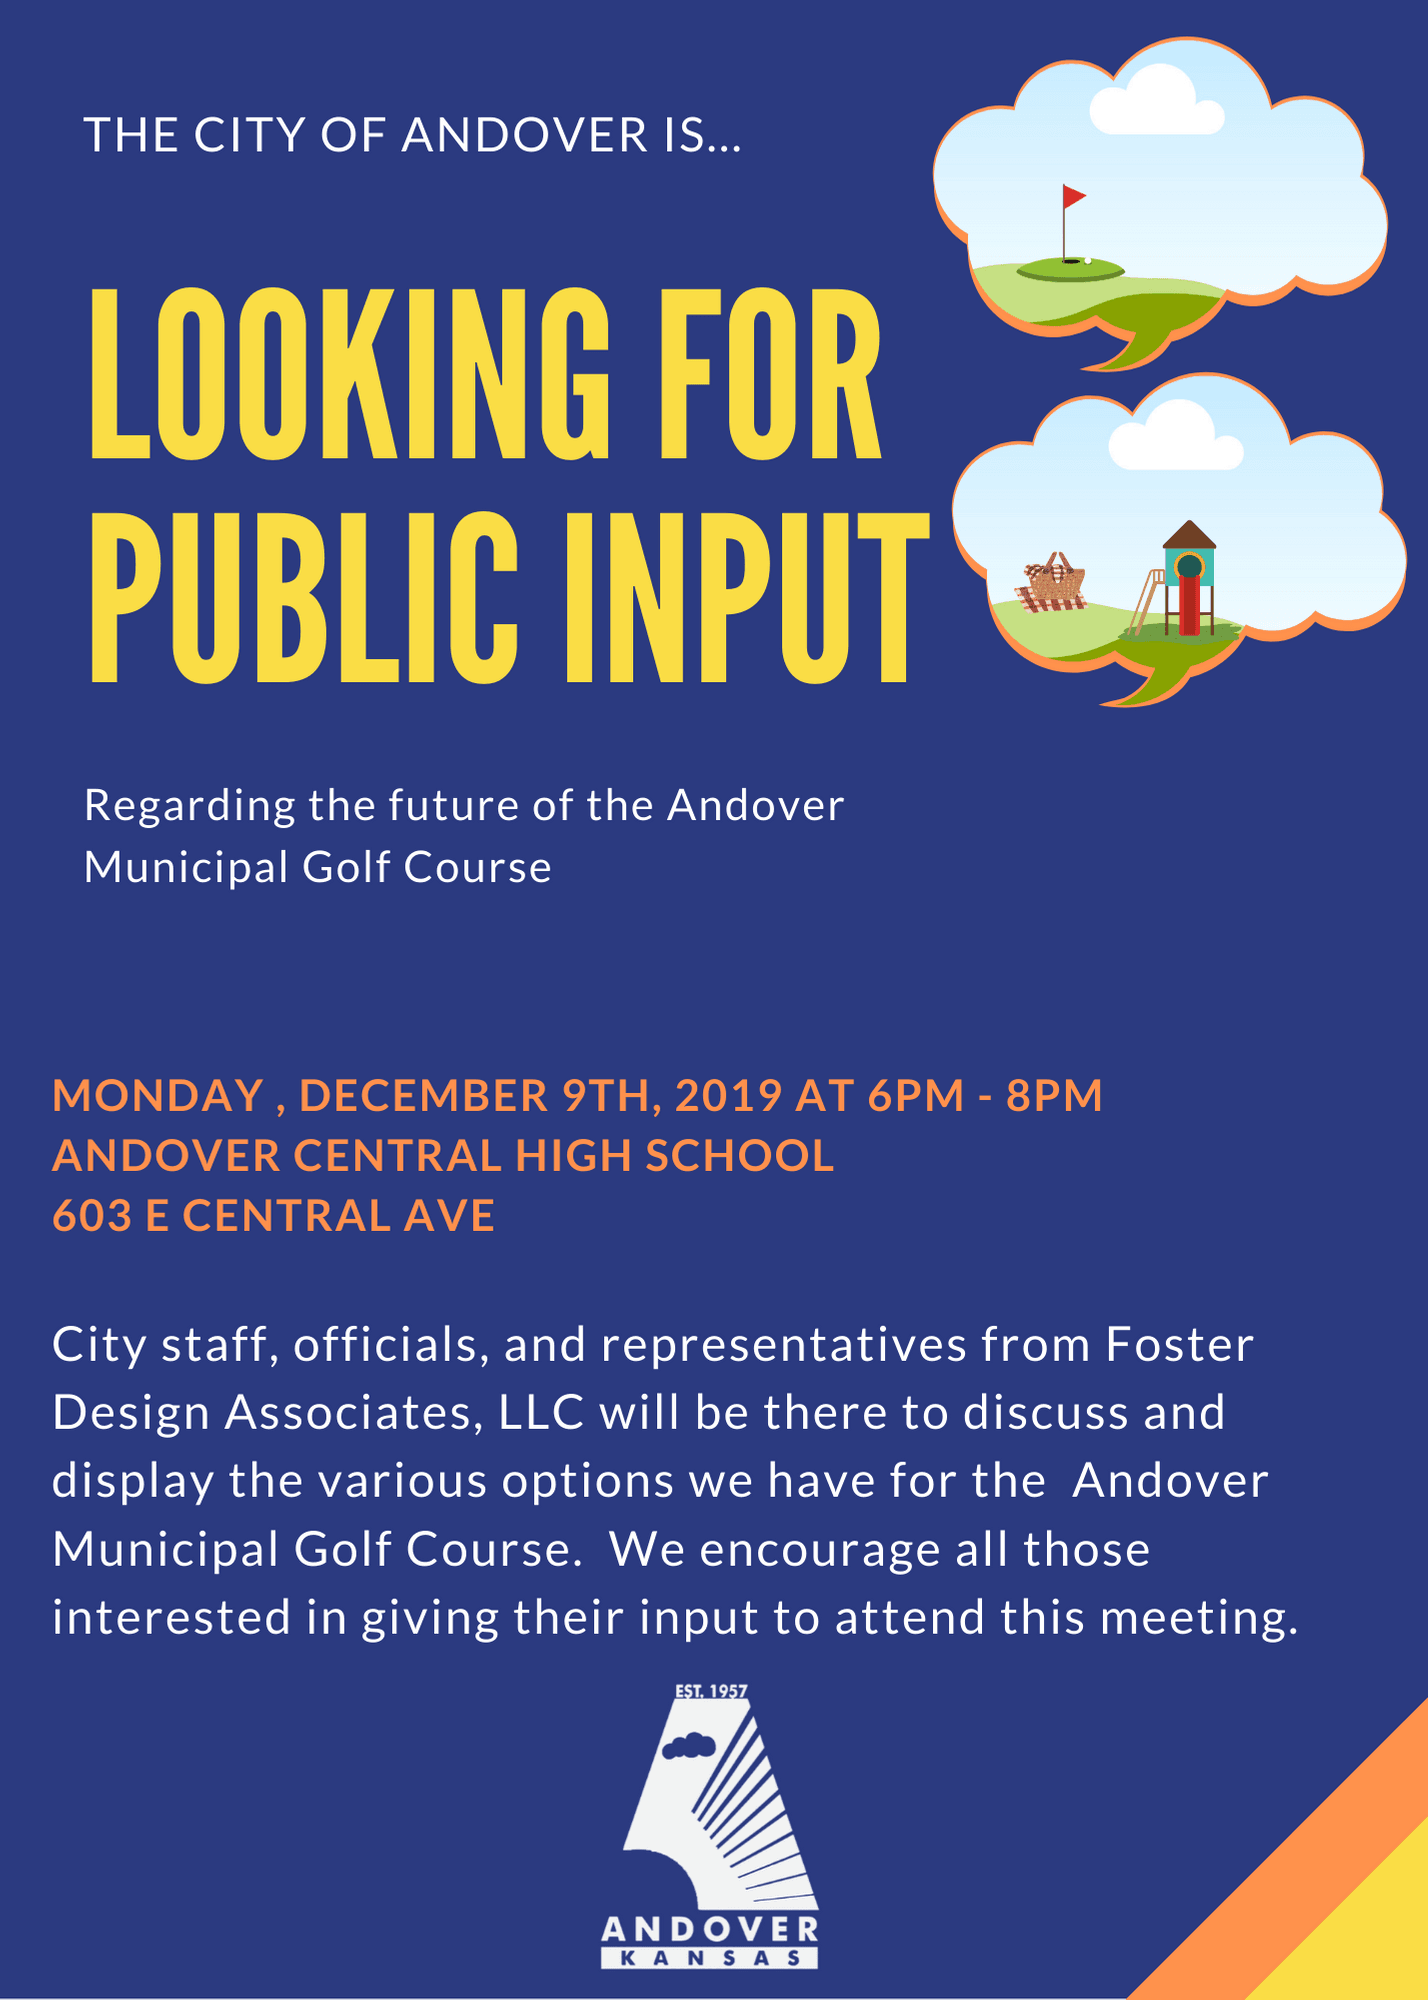 Public Input Invitation regarding municipal golf course on 12-09-19 at ACHS from 6pm-8pm